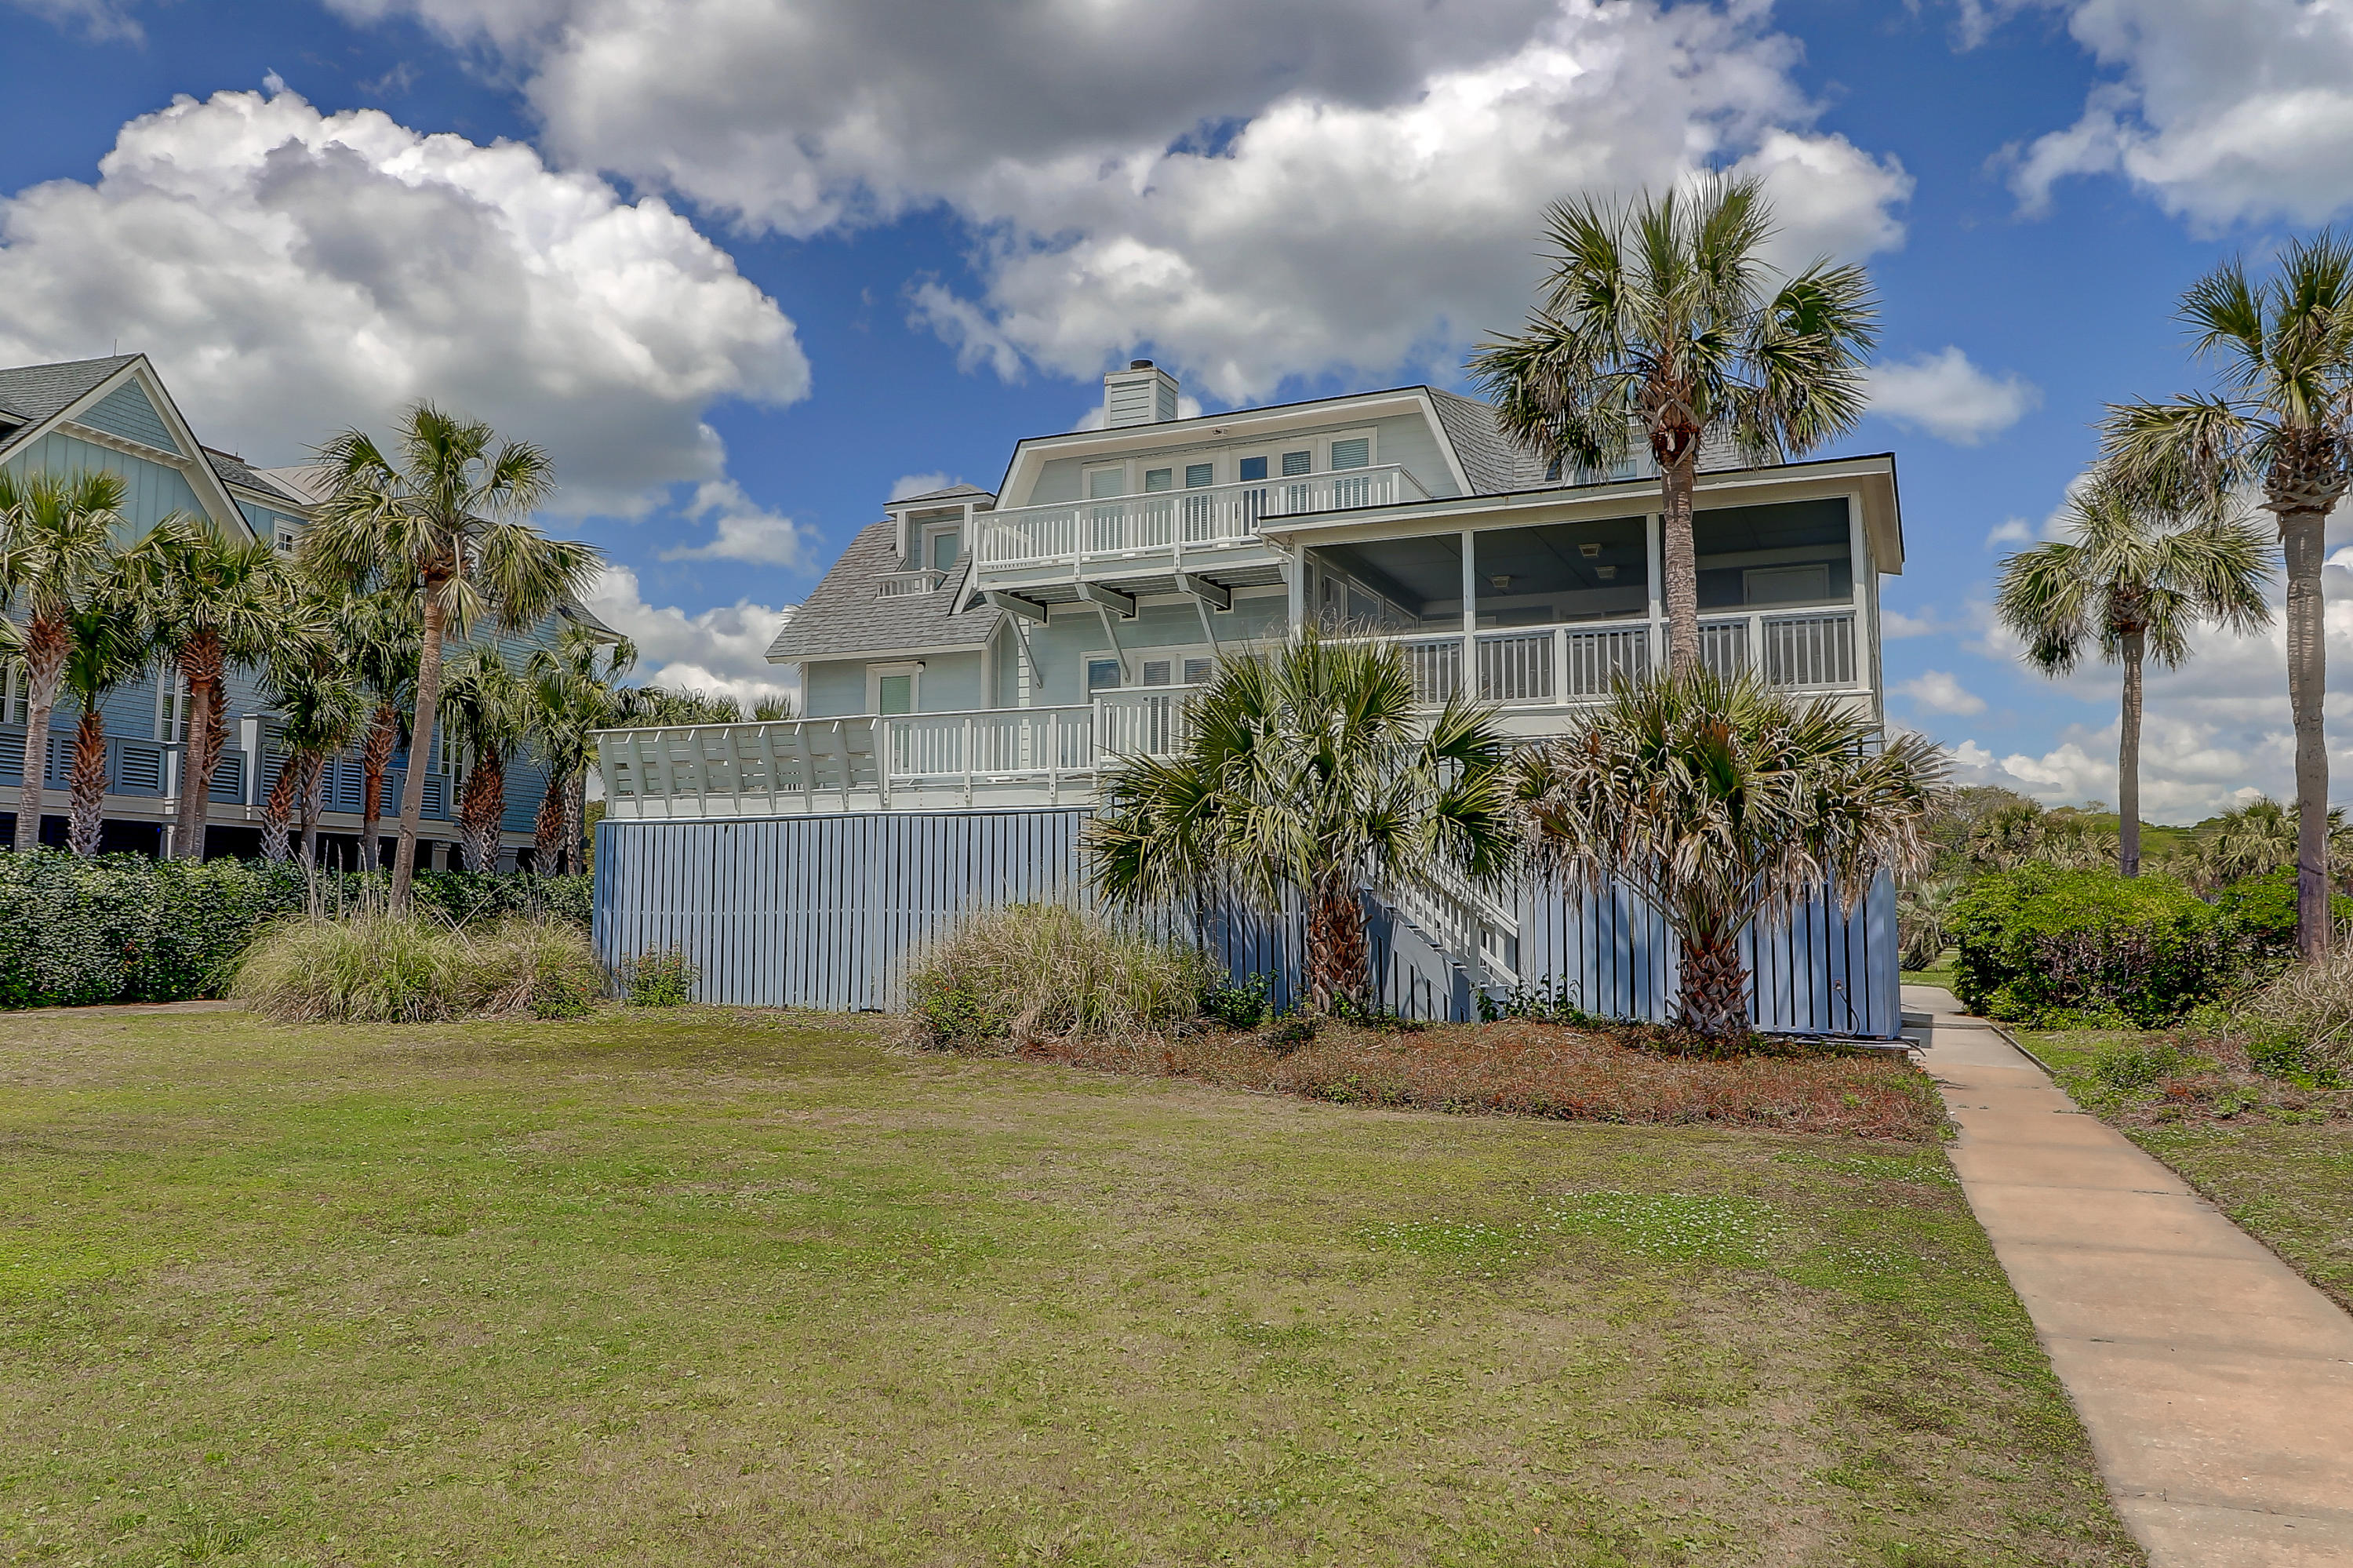 Isle of Palms Homes For Sale - 1 47th (1/13th), Isle of Palms, SC - 52